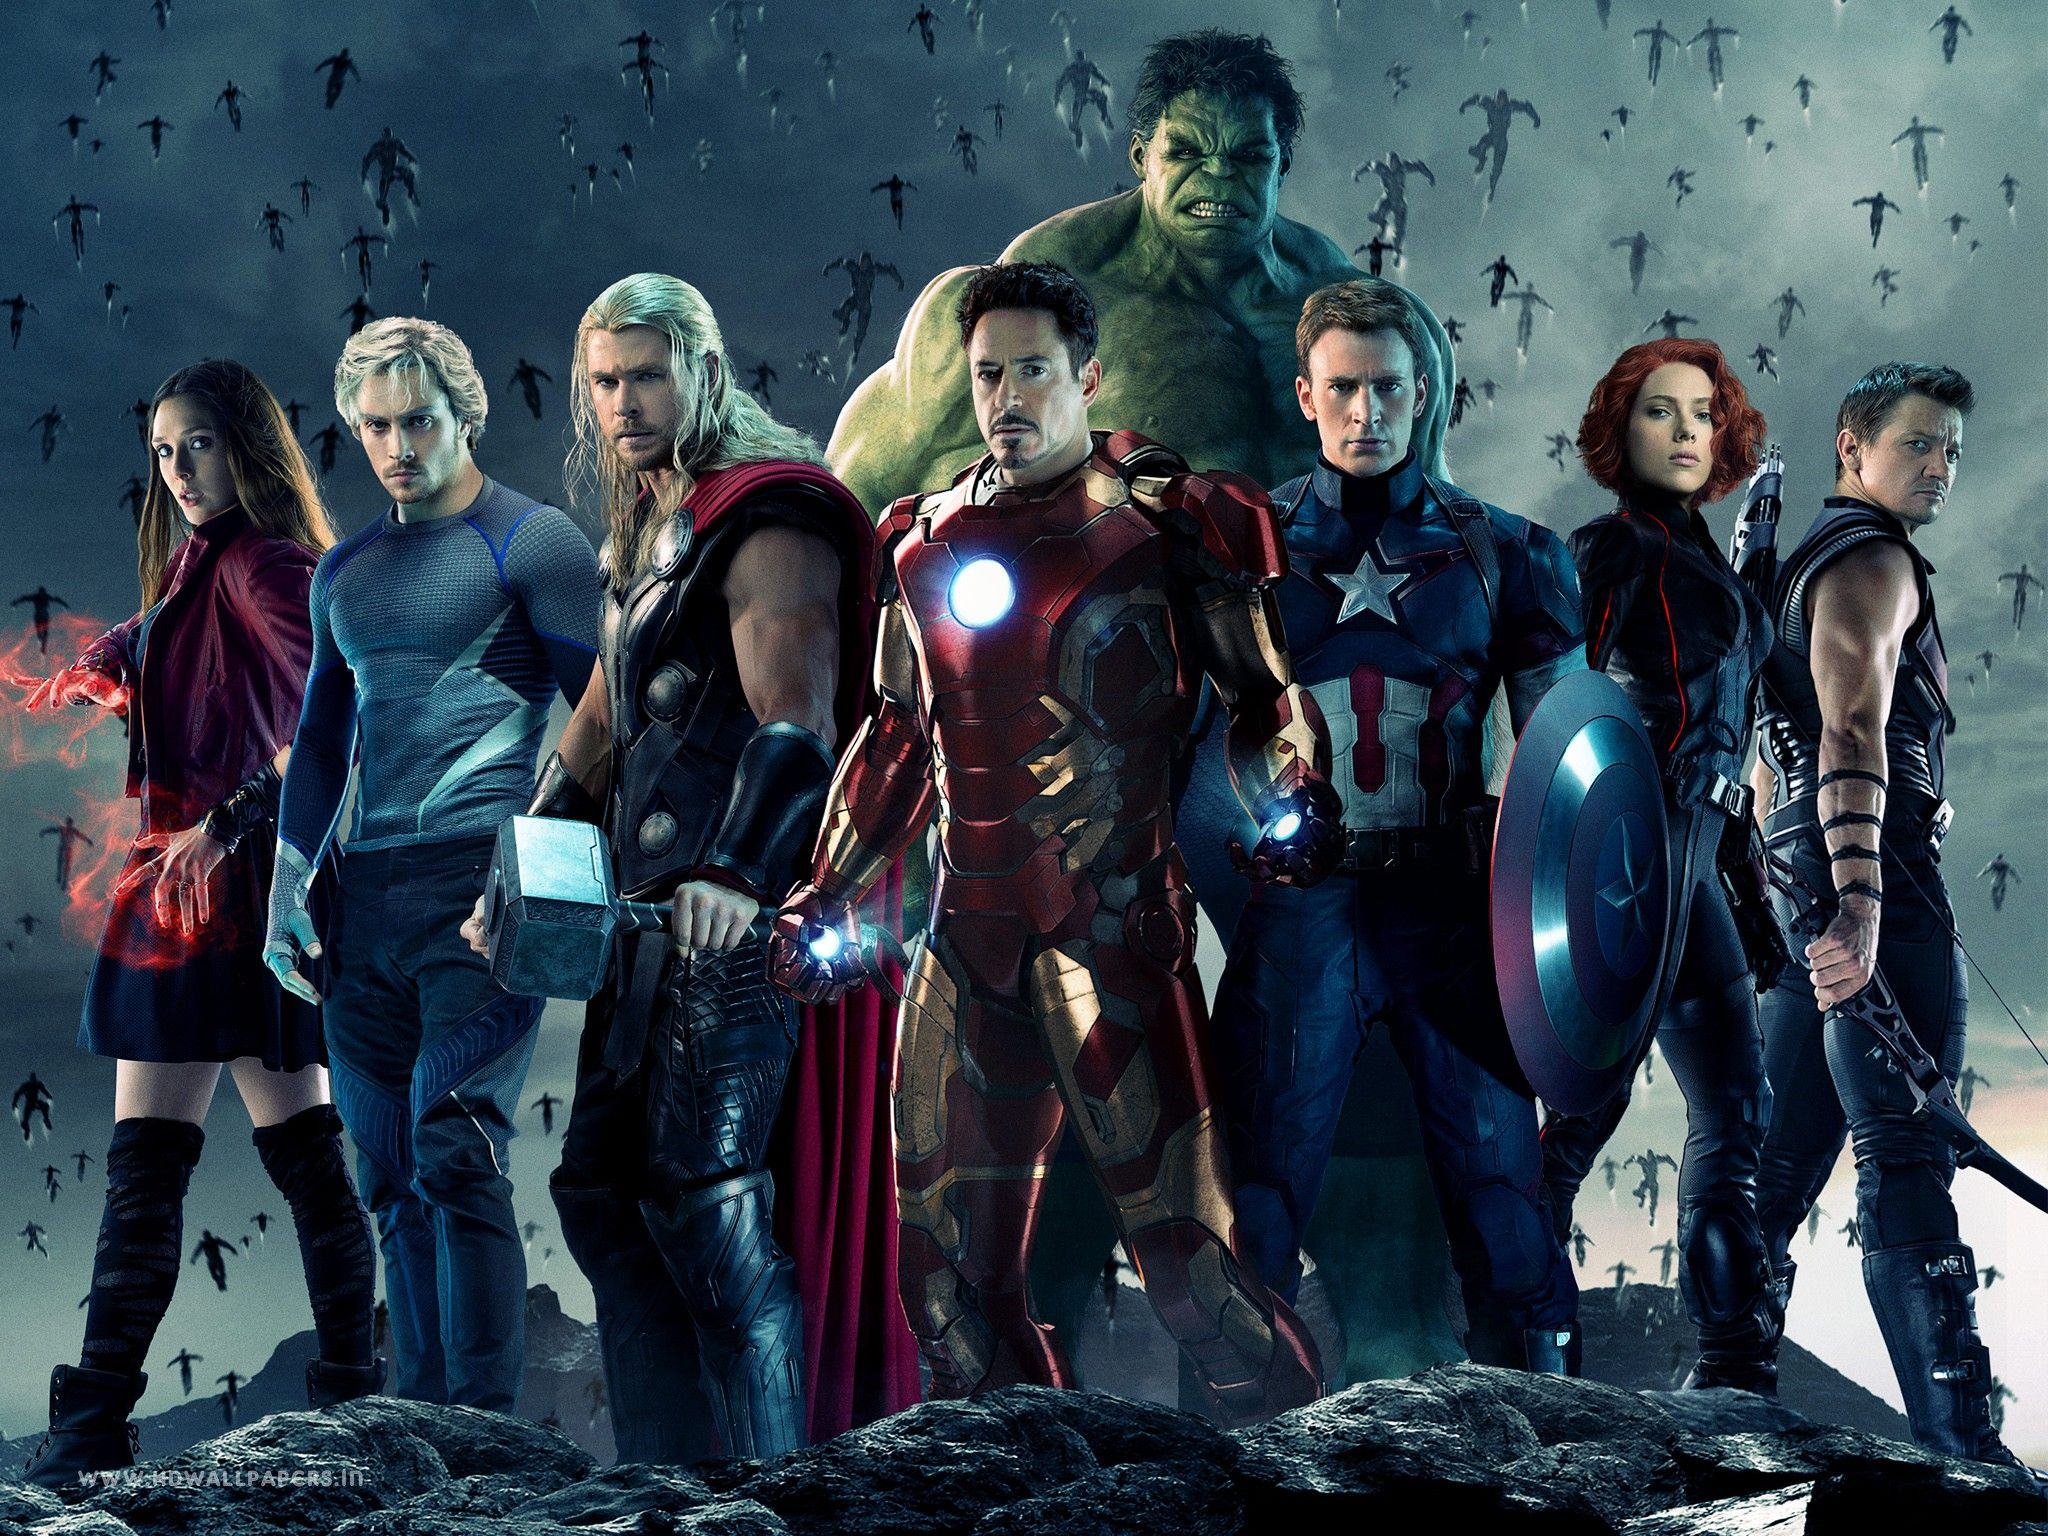 Avengers Movie Wallpapers - Top Free Avengers Movie Backgrounds -  WallpaperAccess